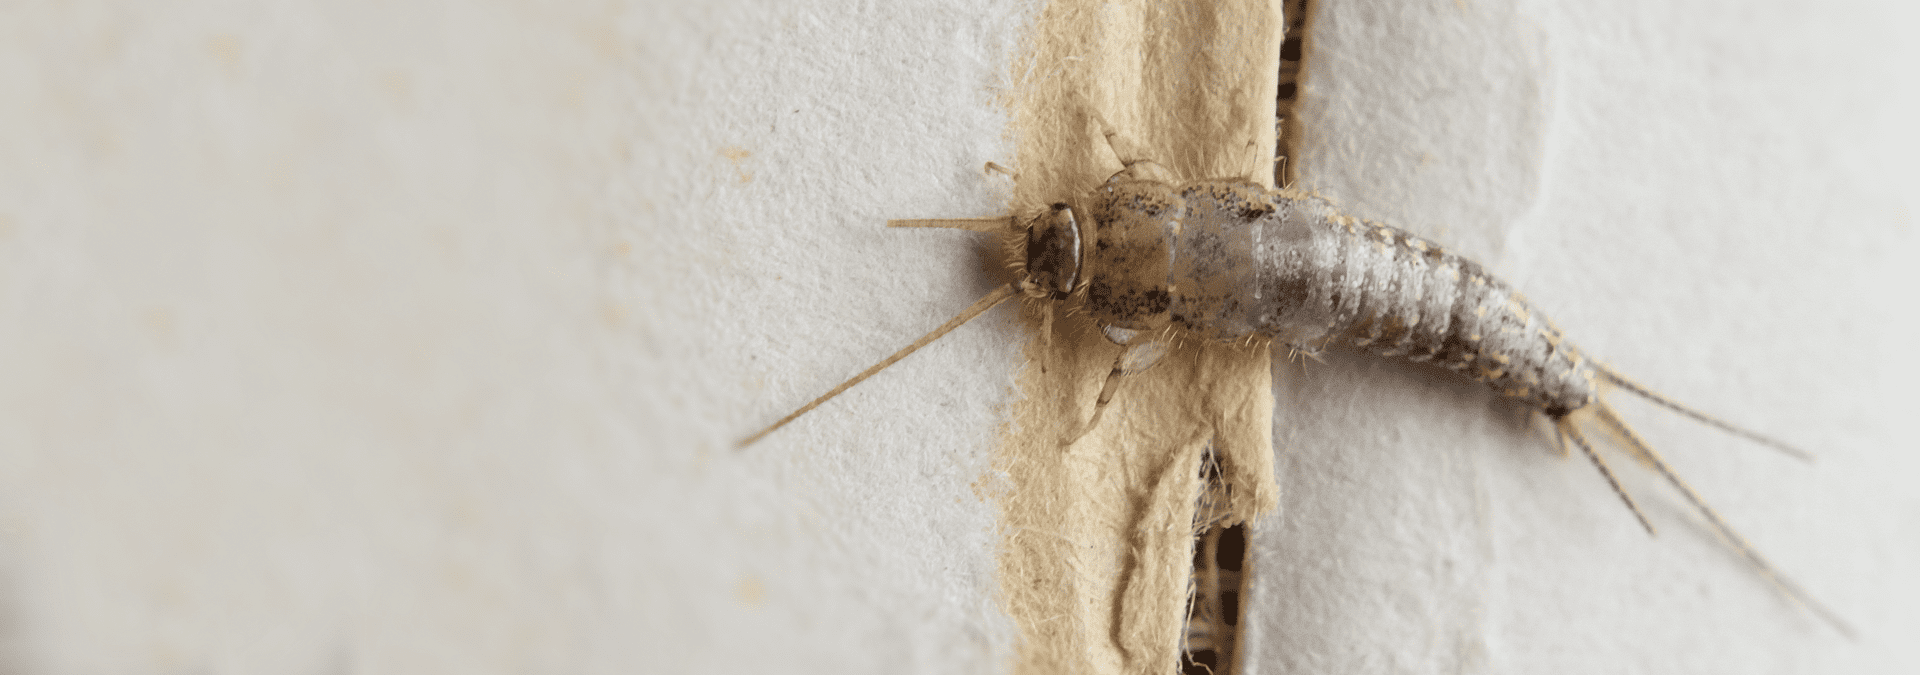 a silverfish inside of a jacksonville florida home